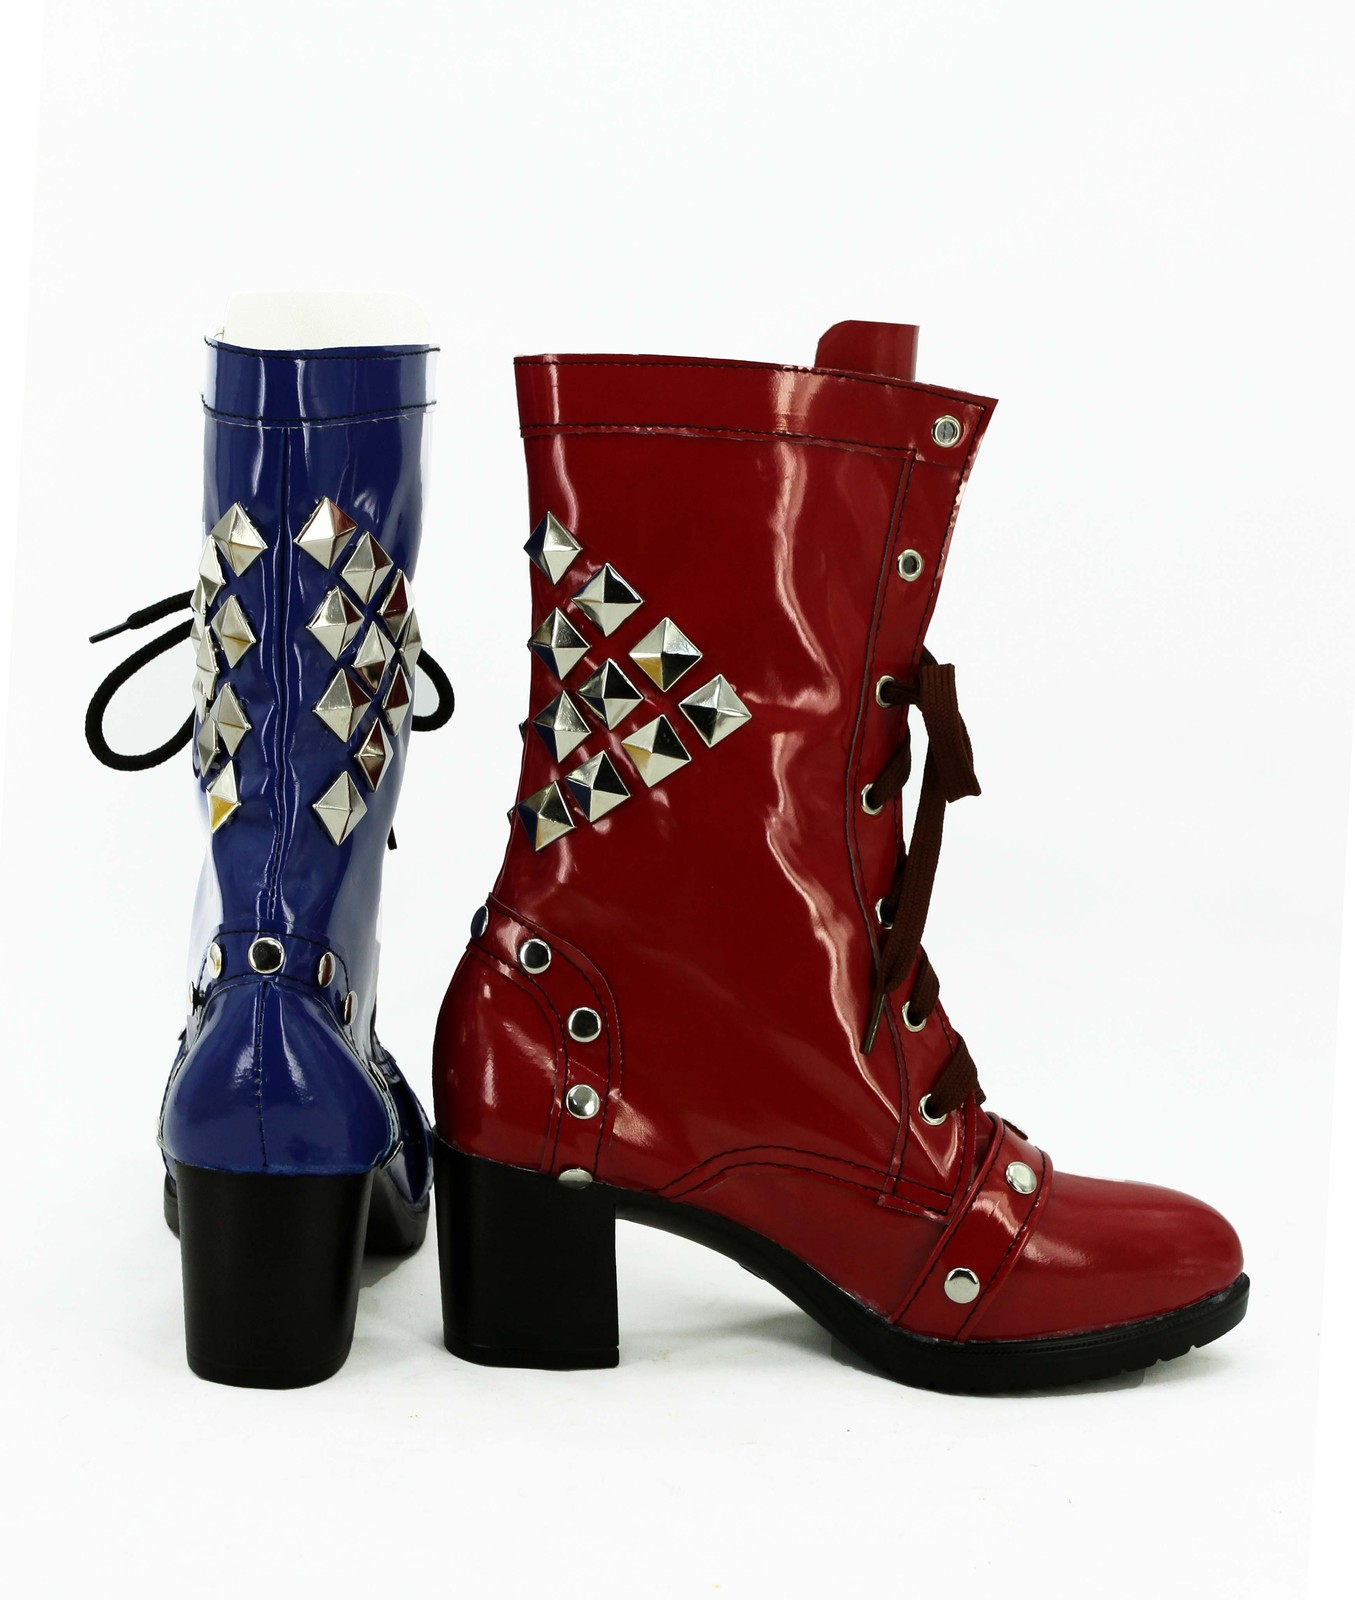 Batman Harley Quinn Arkham Knight cos Cosplay Shoes boots shoe boot #AT24